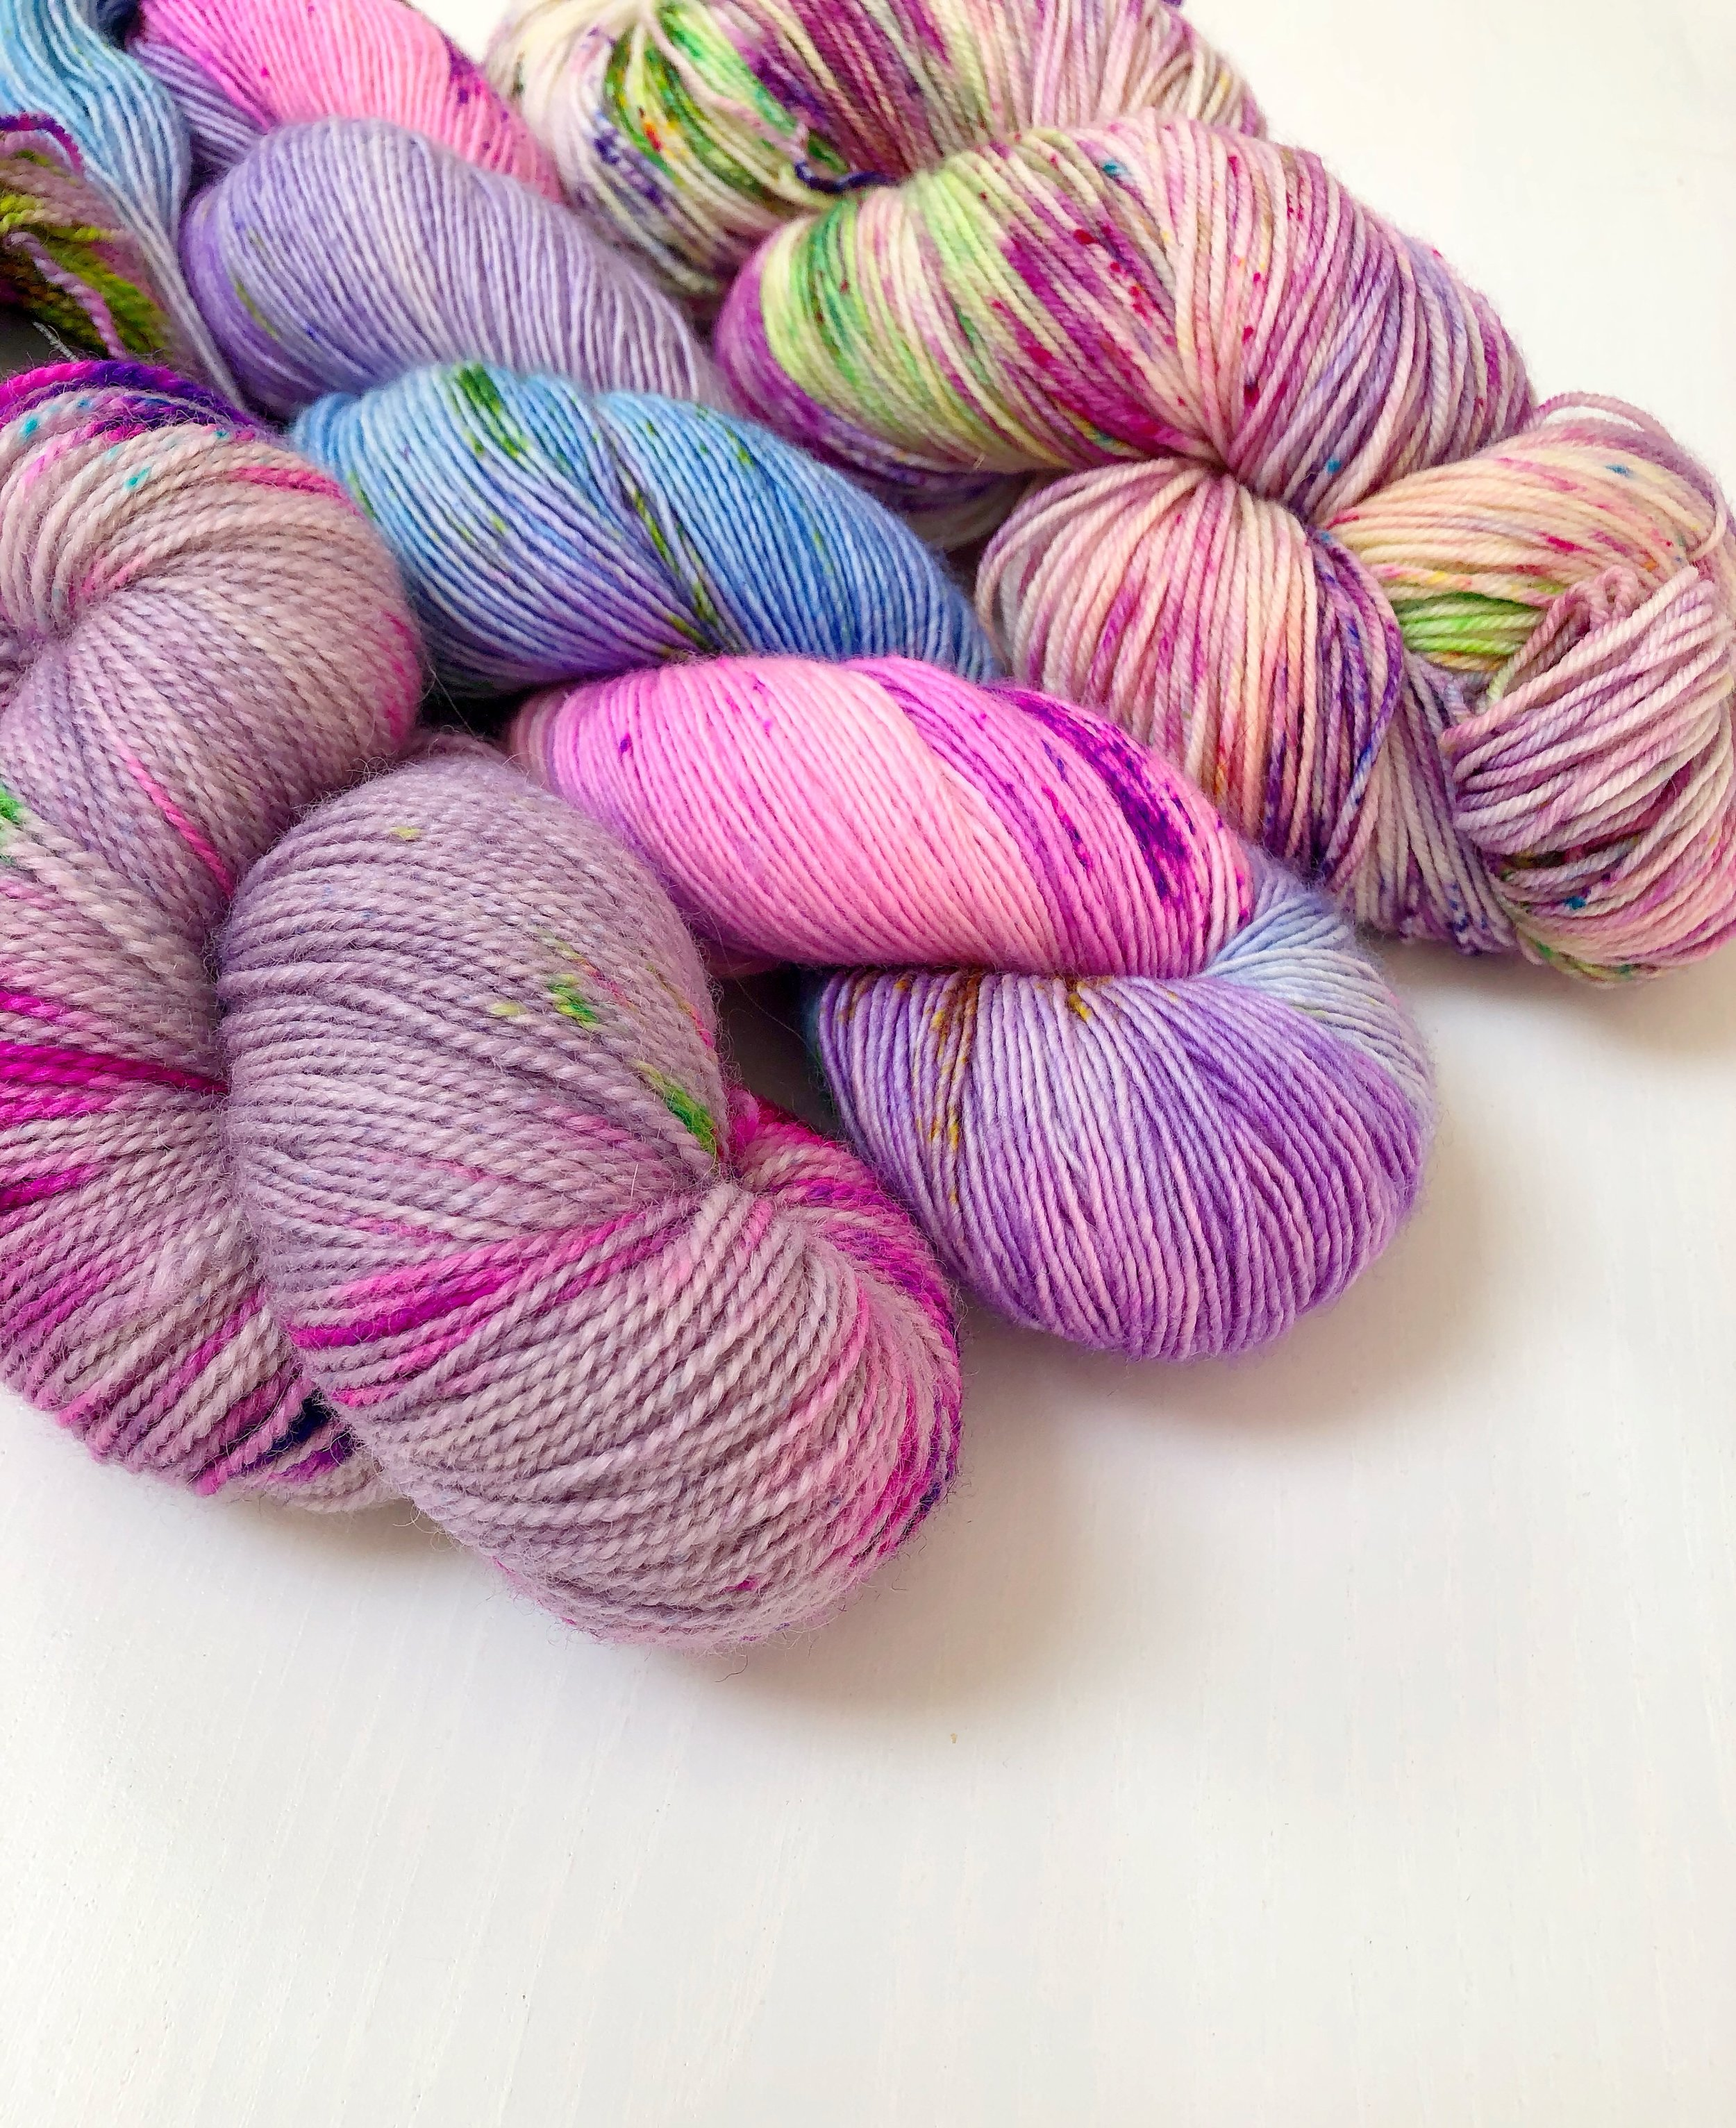 the winners will get to choose one of these skeins of 4ply sock yarn; l-r Ritual, Pixie Dust and Cerinthe